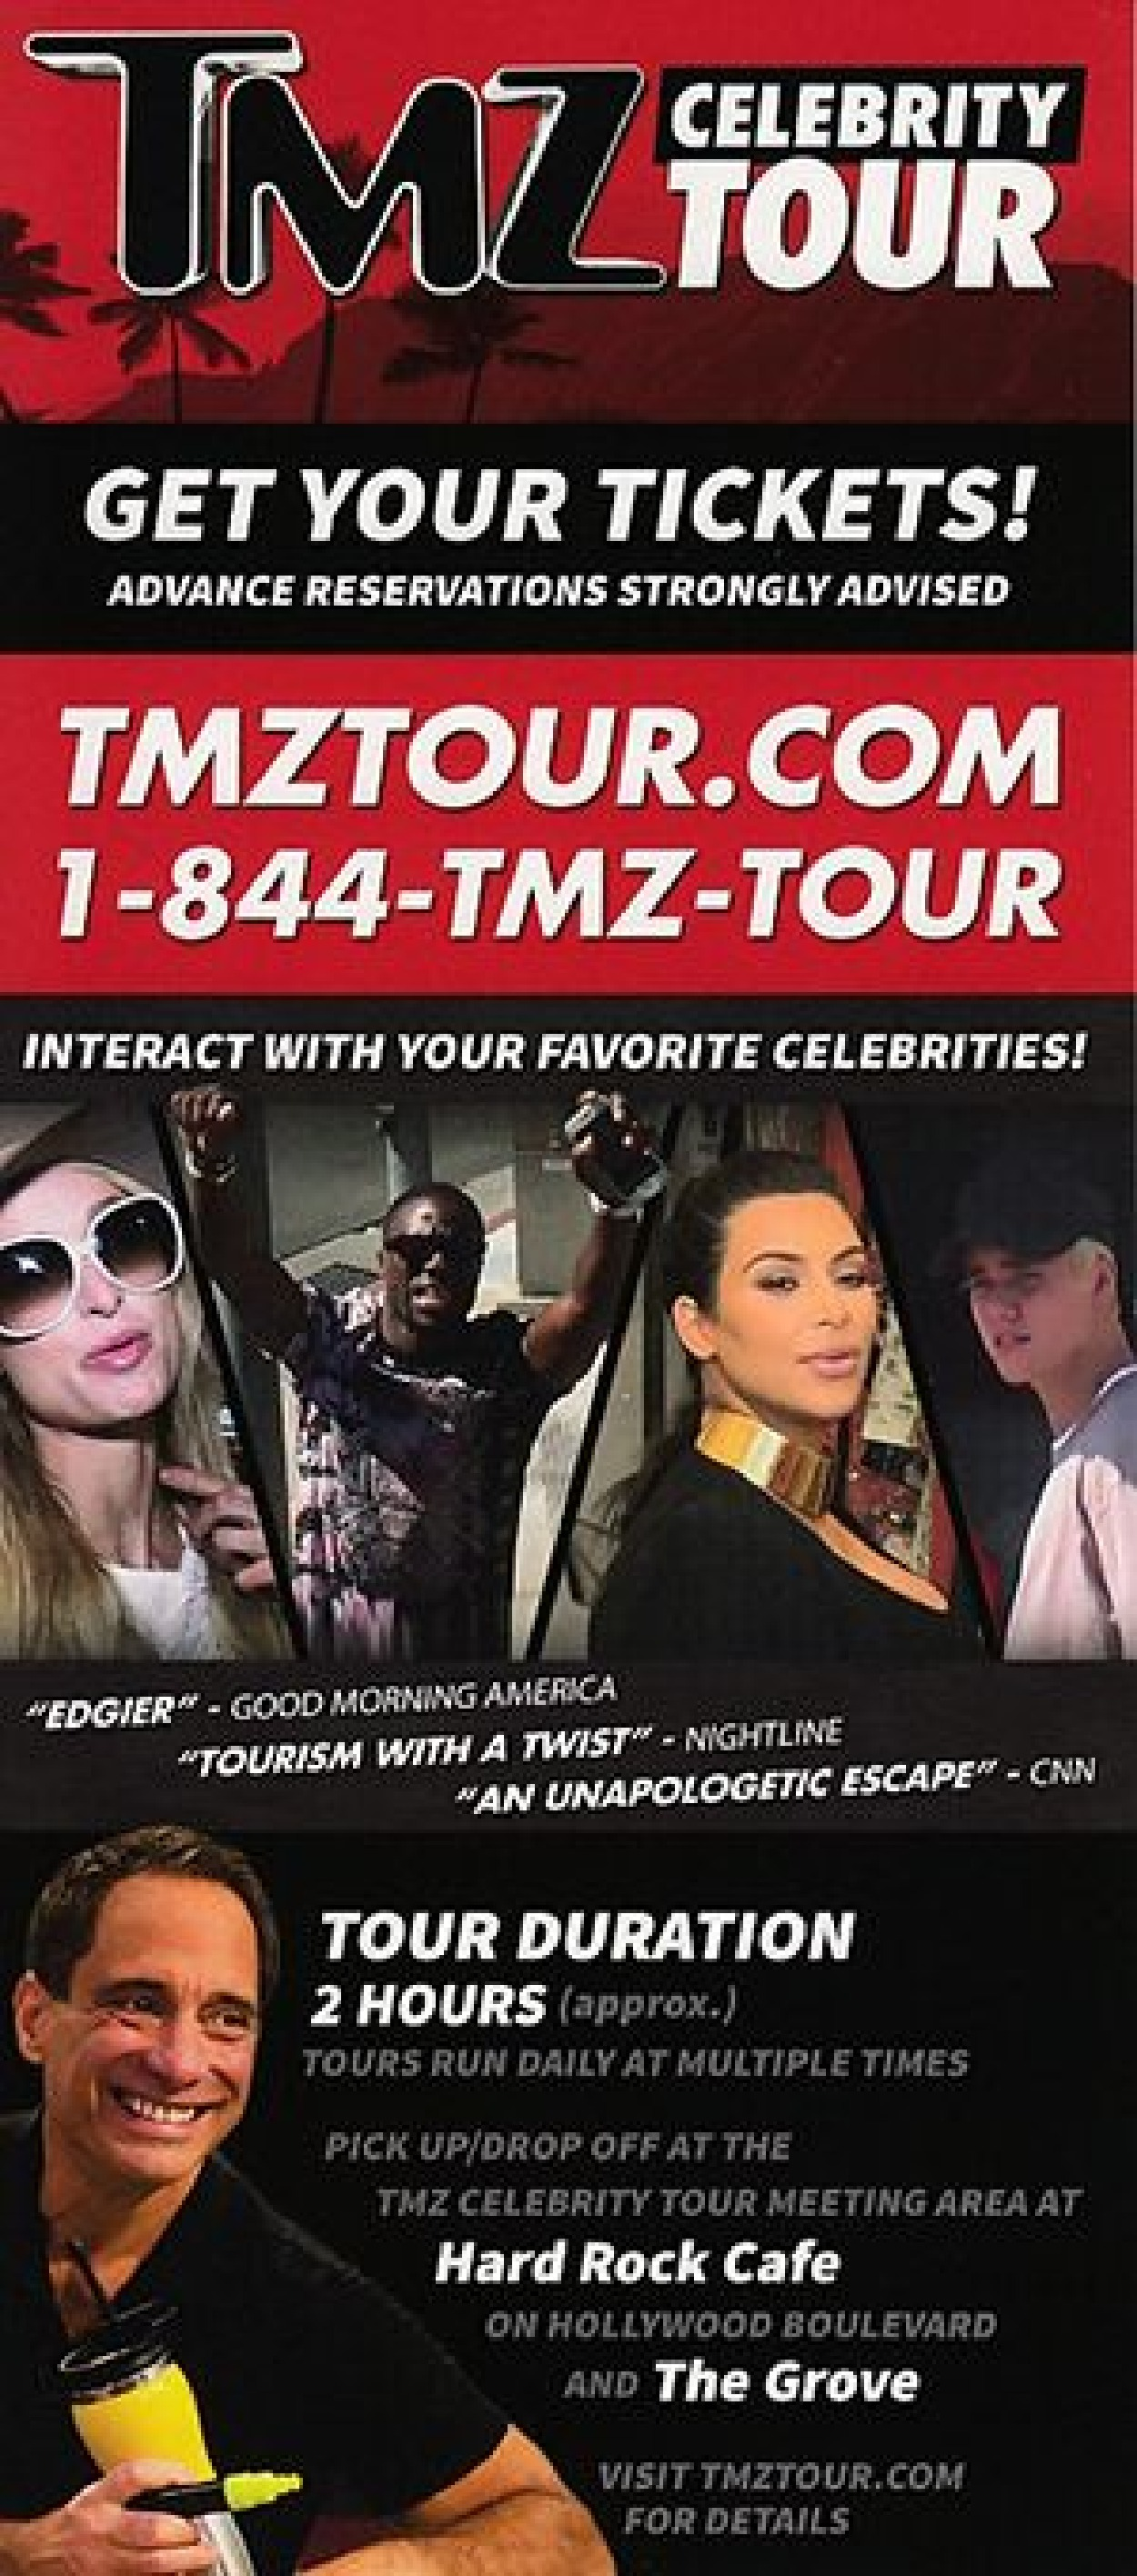 Tmz celebrity tour los angeles ca for Tmz tours in los angeles